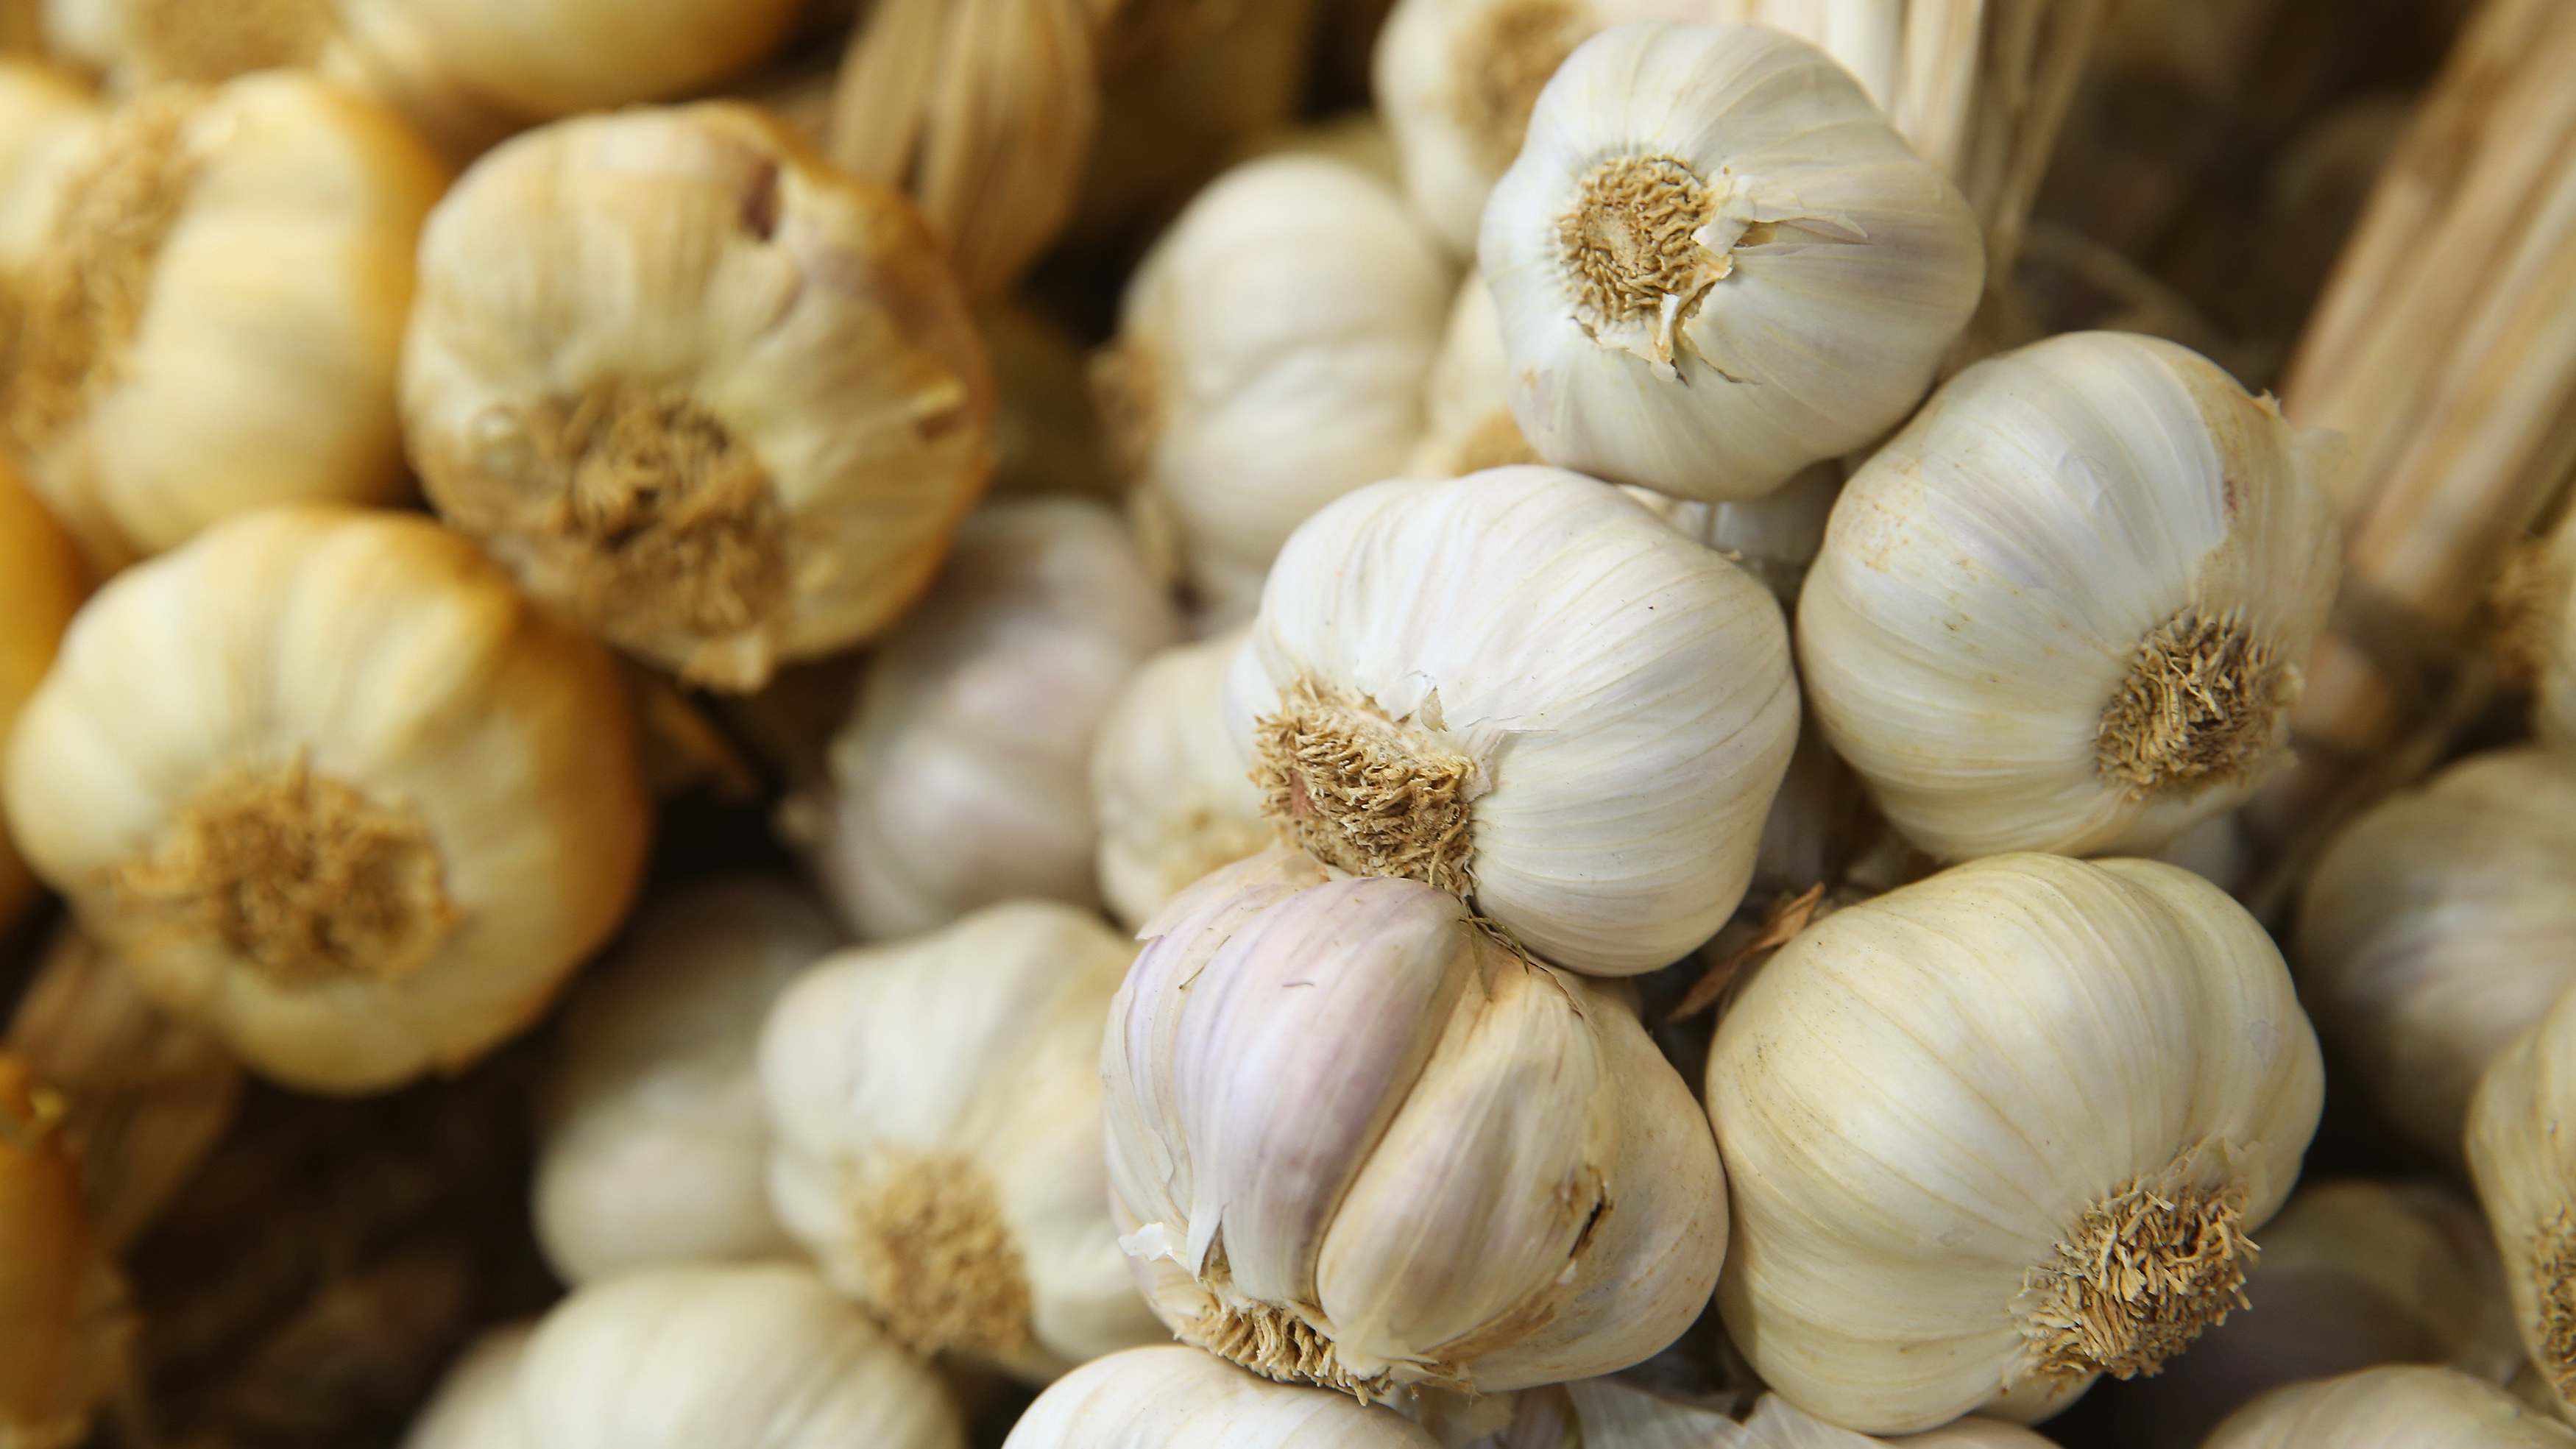 Garlic facts and history: The truth about vampires and health benefits